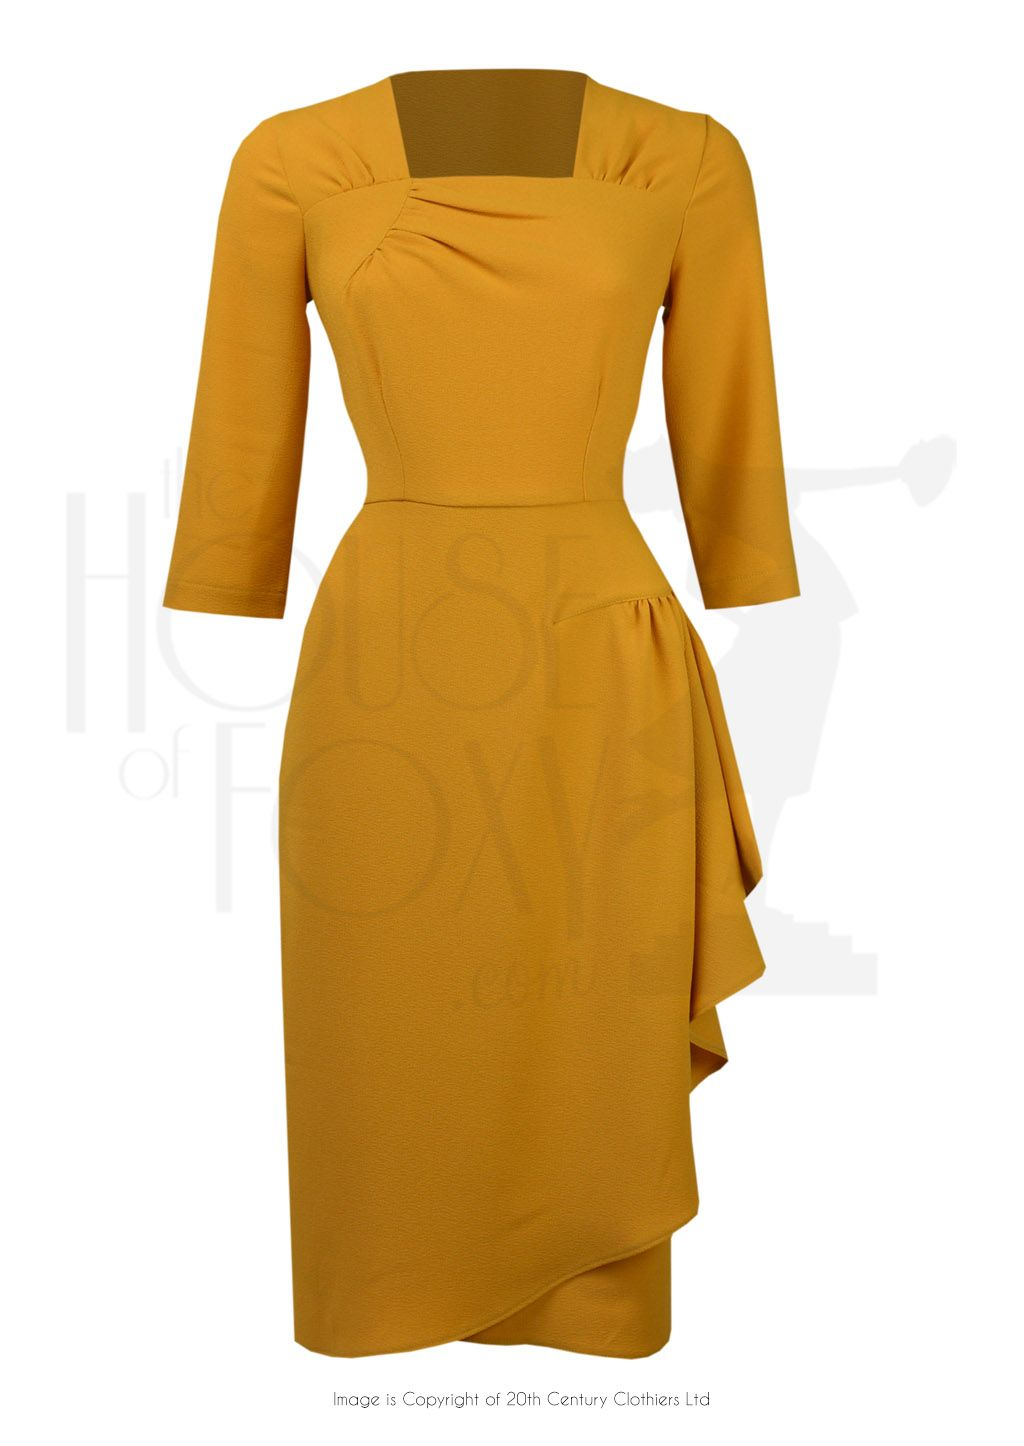 40s O Hara Cocktail Dress Mustard Fall Cocktail Dress Retro Fashion Outfits Cocktail Dress Vintage [ 1446 x 1024 Pixel ]